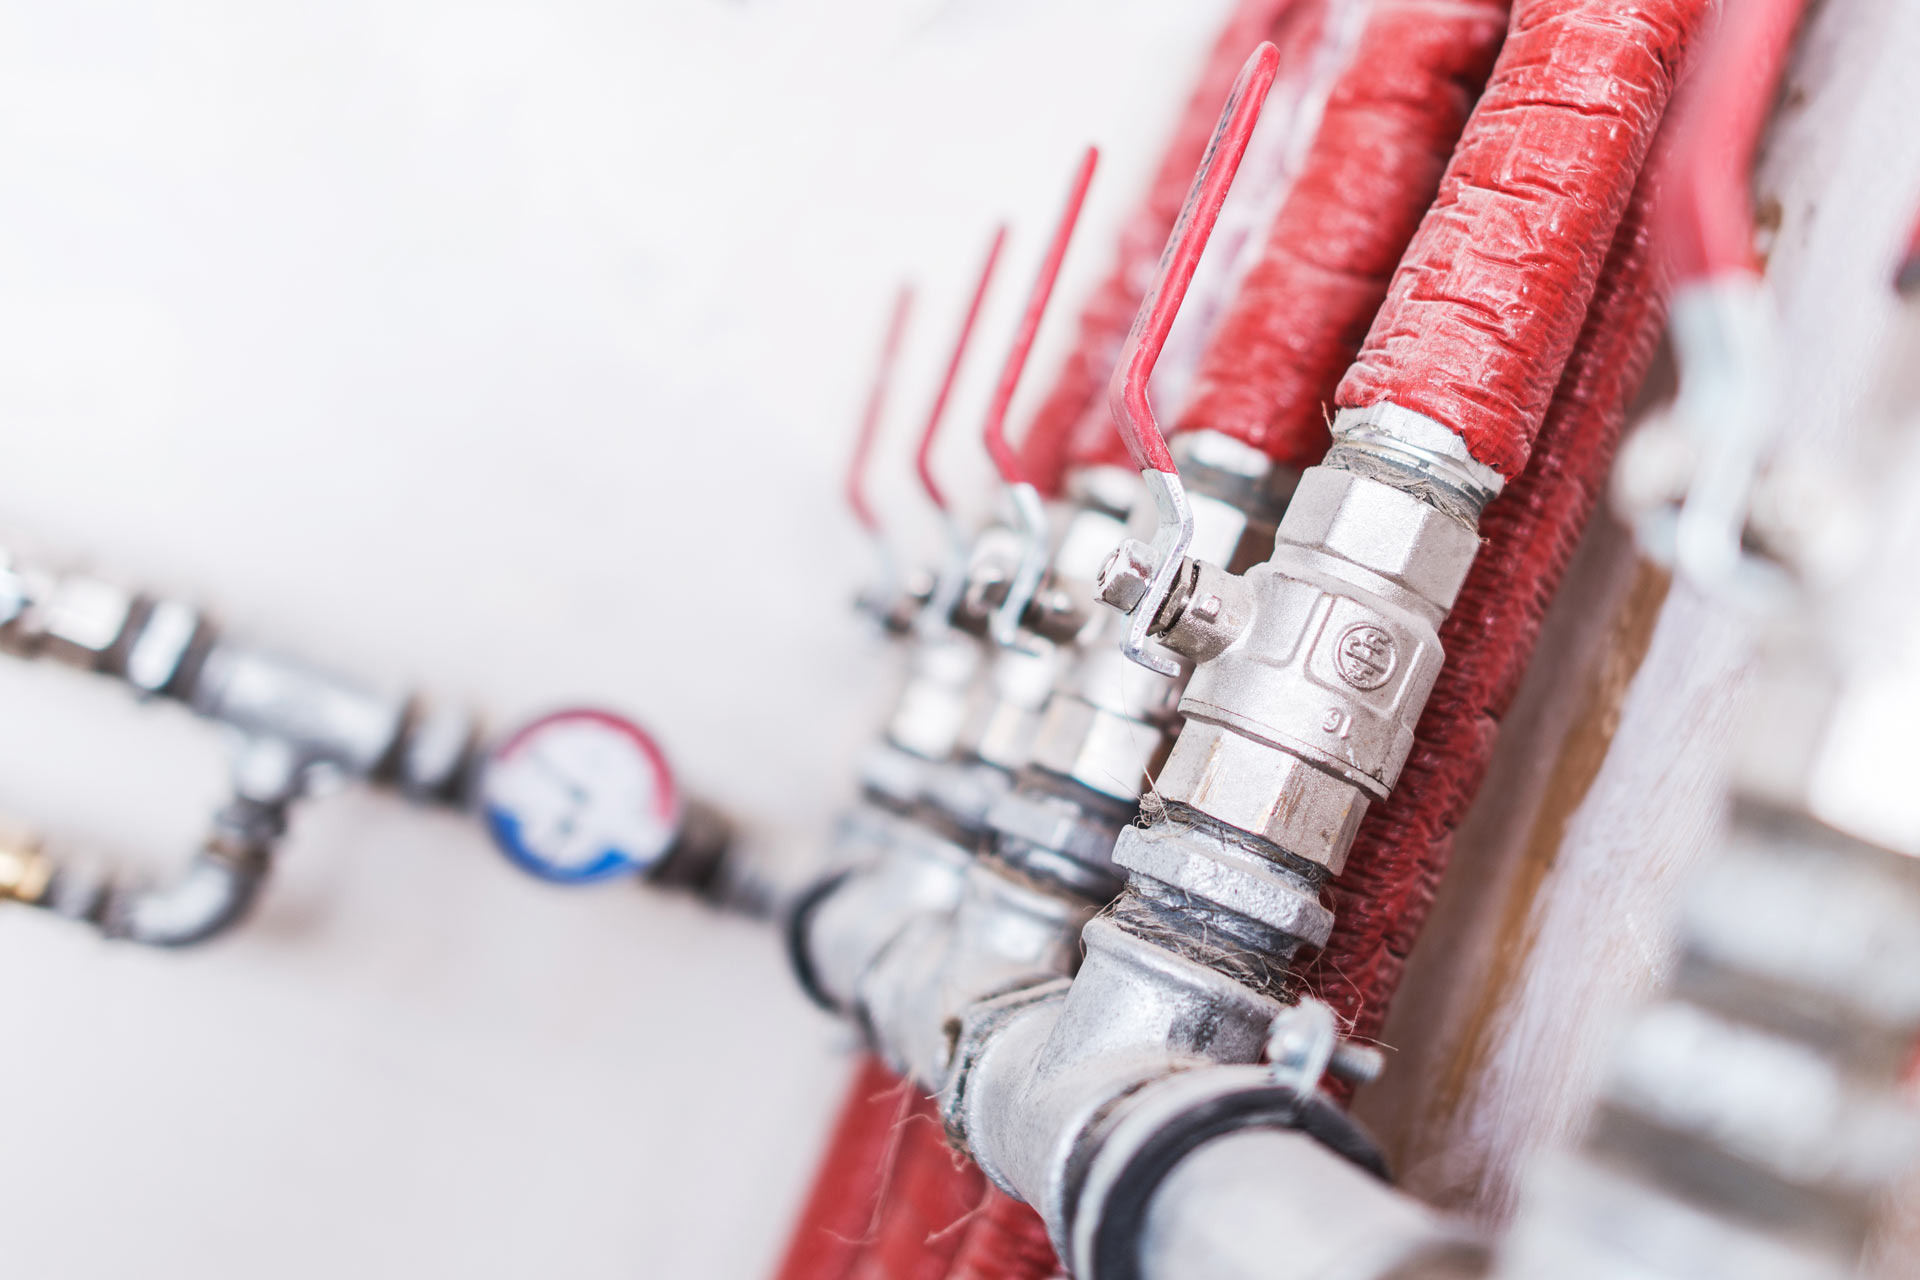 Why is it Important to Replace KITEC Plumbing in Your Home?